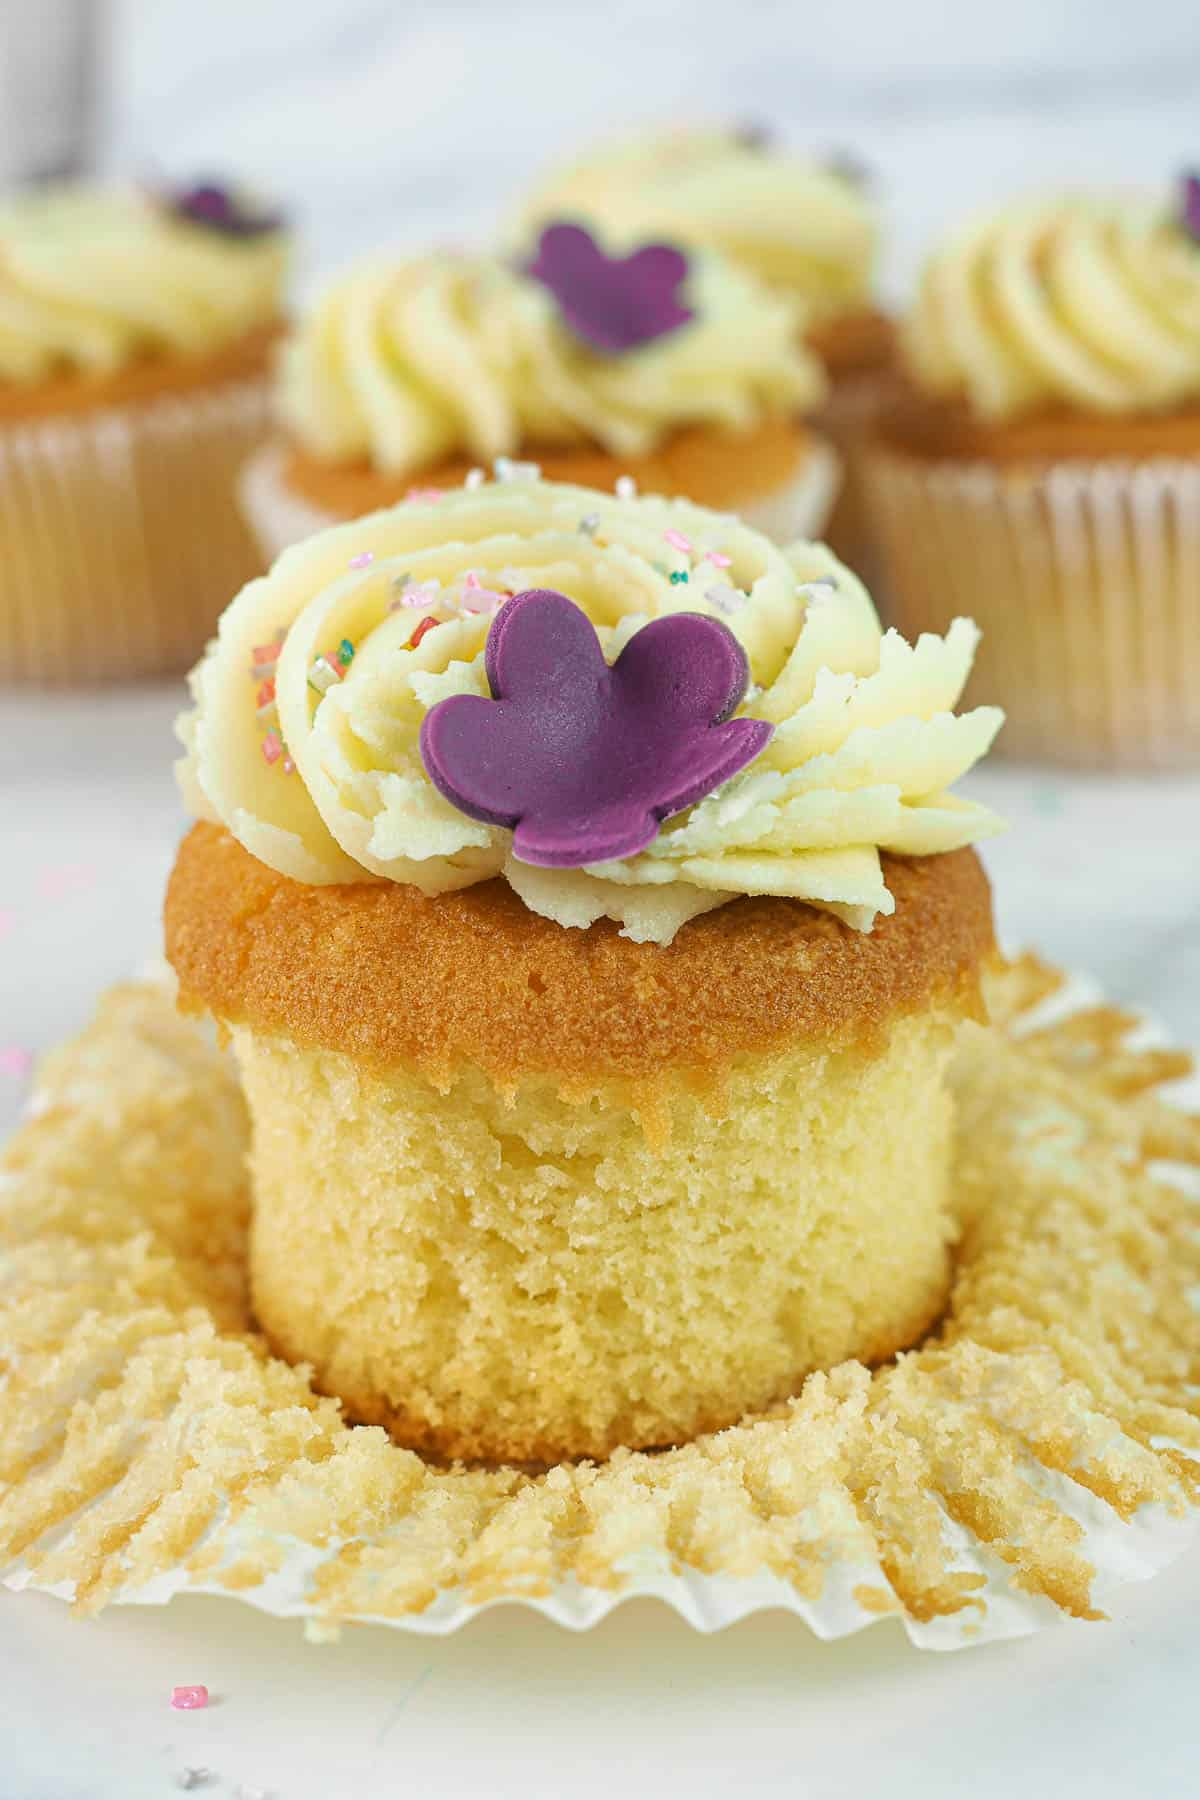 A cupcake with its casing peeled open. Cupcake is decorated with a simple buttercream swirl, sugar sprinkles and a purple 5 petal fondant flower